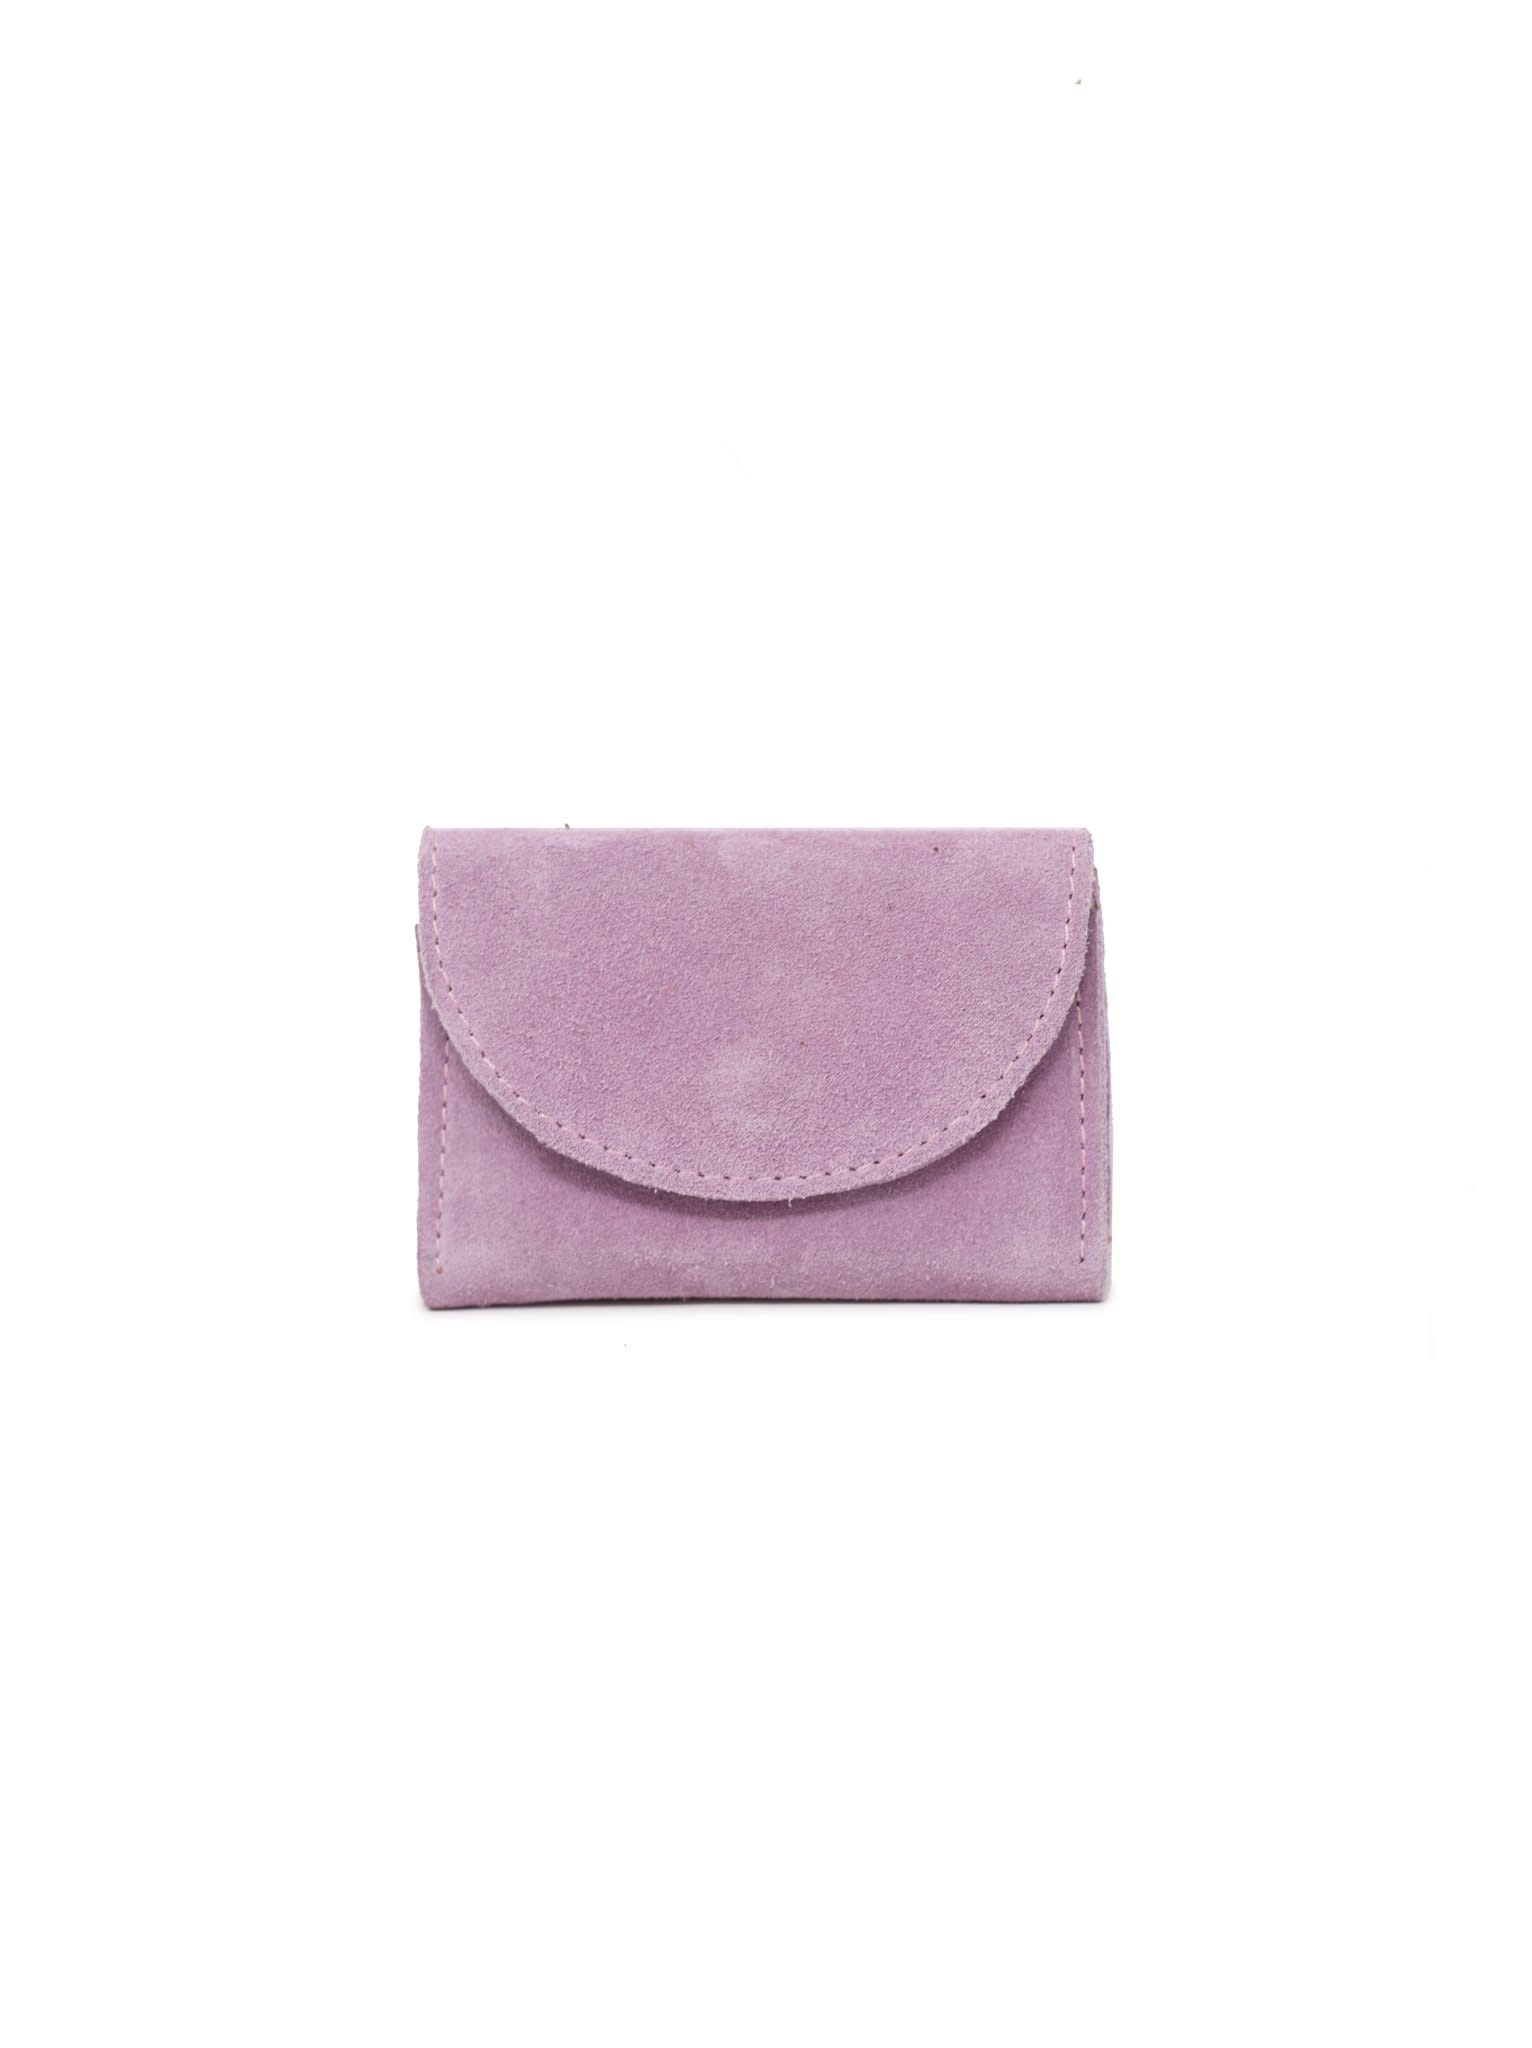 Punchy's Tirhas Coin Purse in Lilac